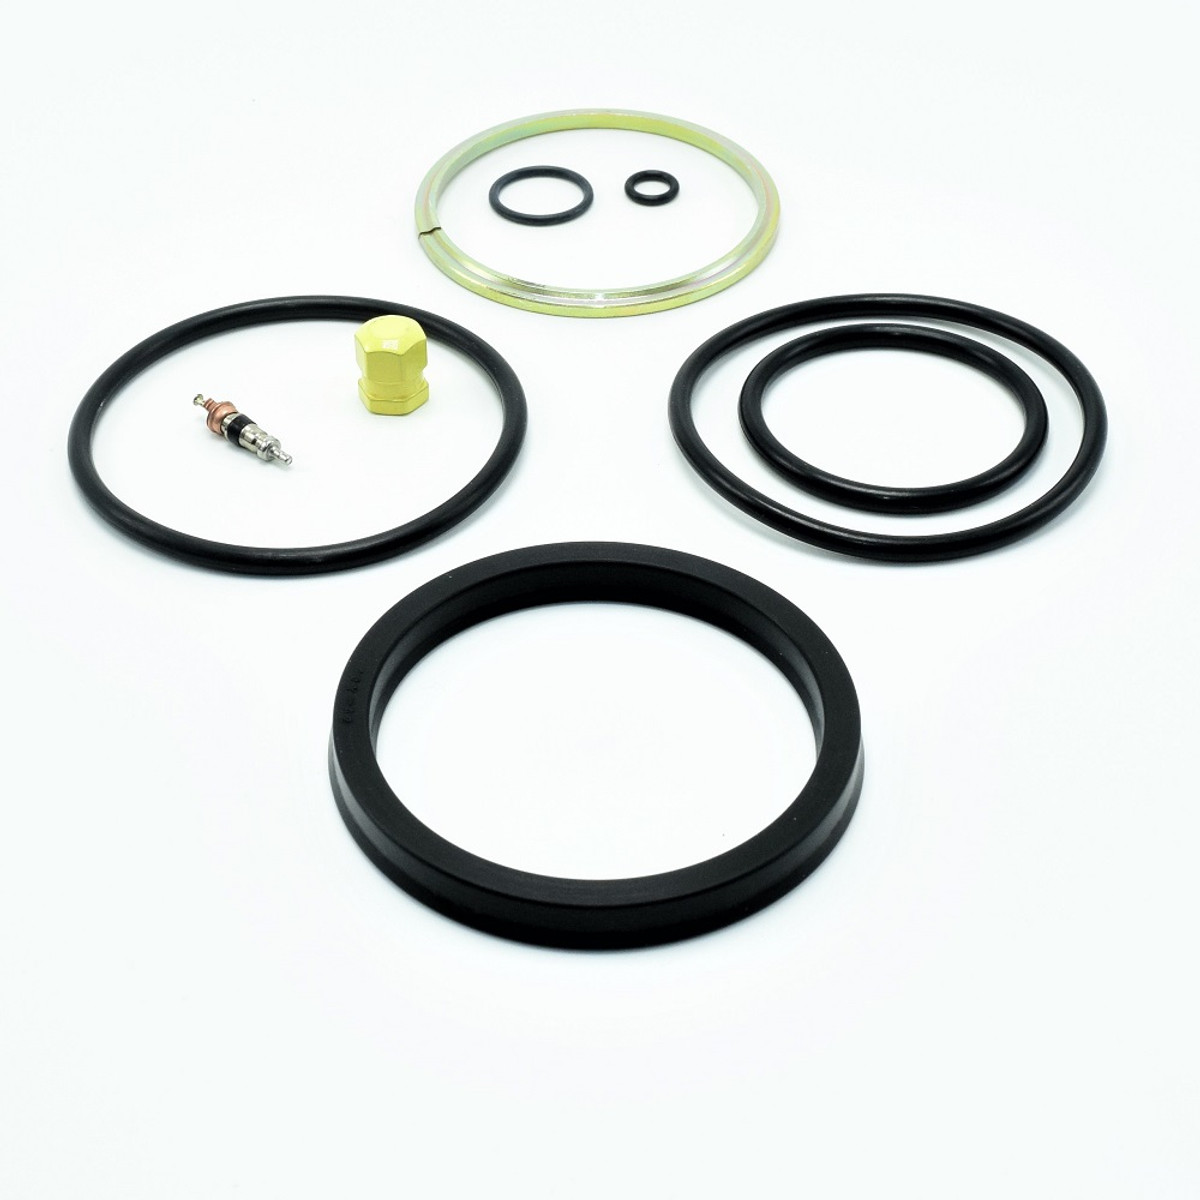 Strut Seal Kit  for Main Gear, Cessna 335 / 340  104-PP340MSSK